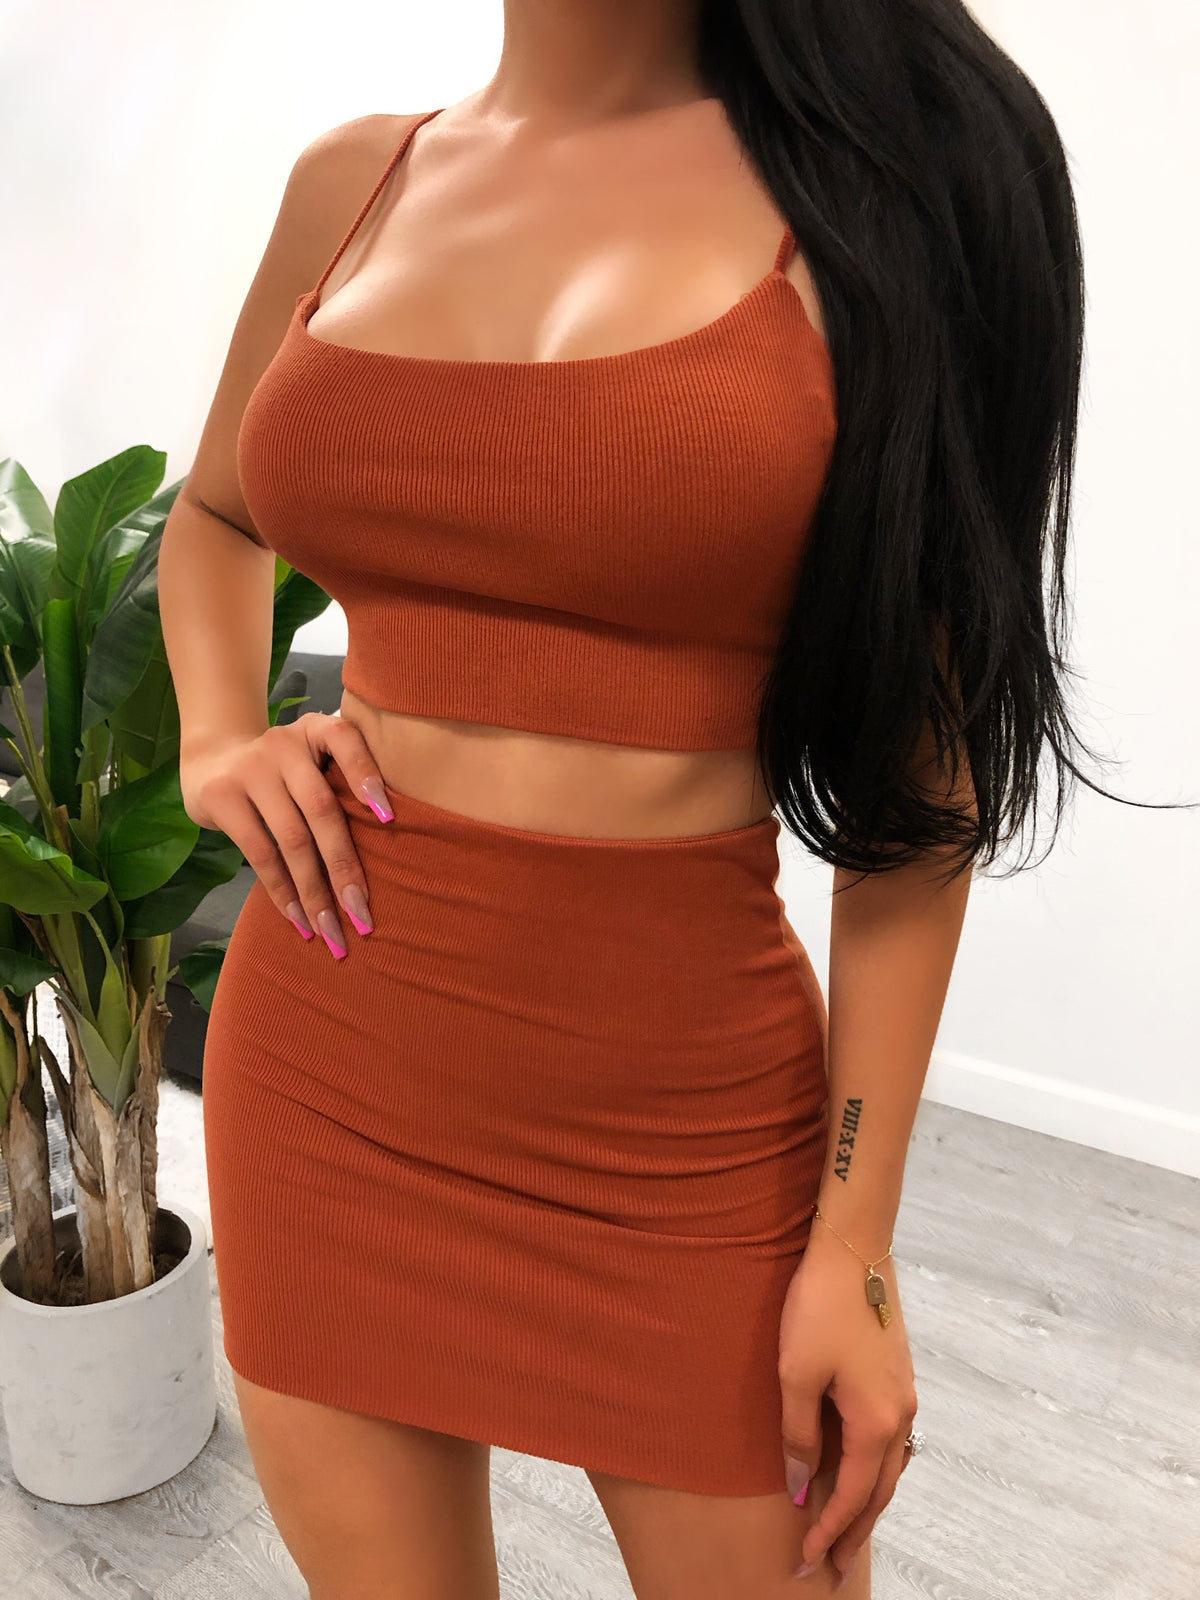 rust 2 piece set. crop top with adjustable spaghetti straps. skirt is above mid thigh length.